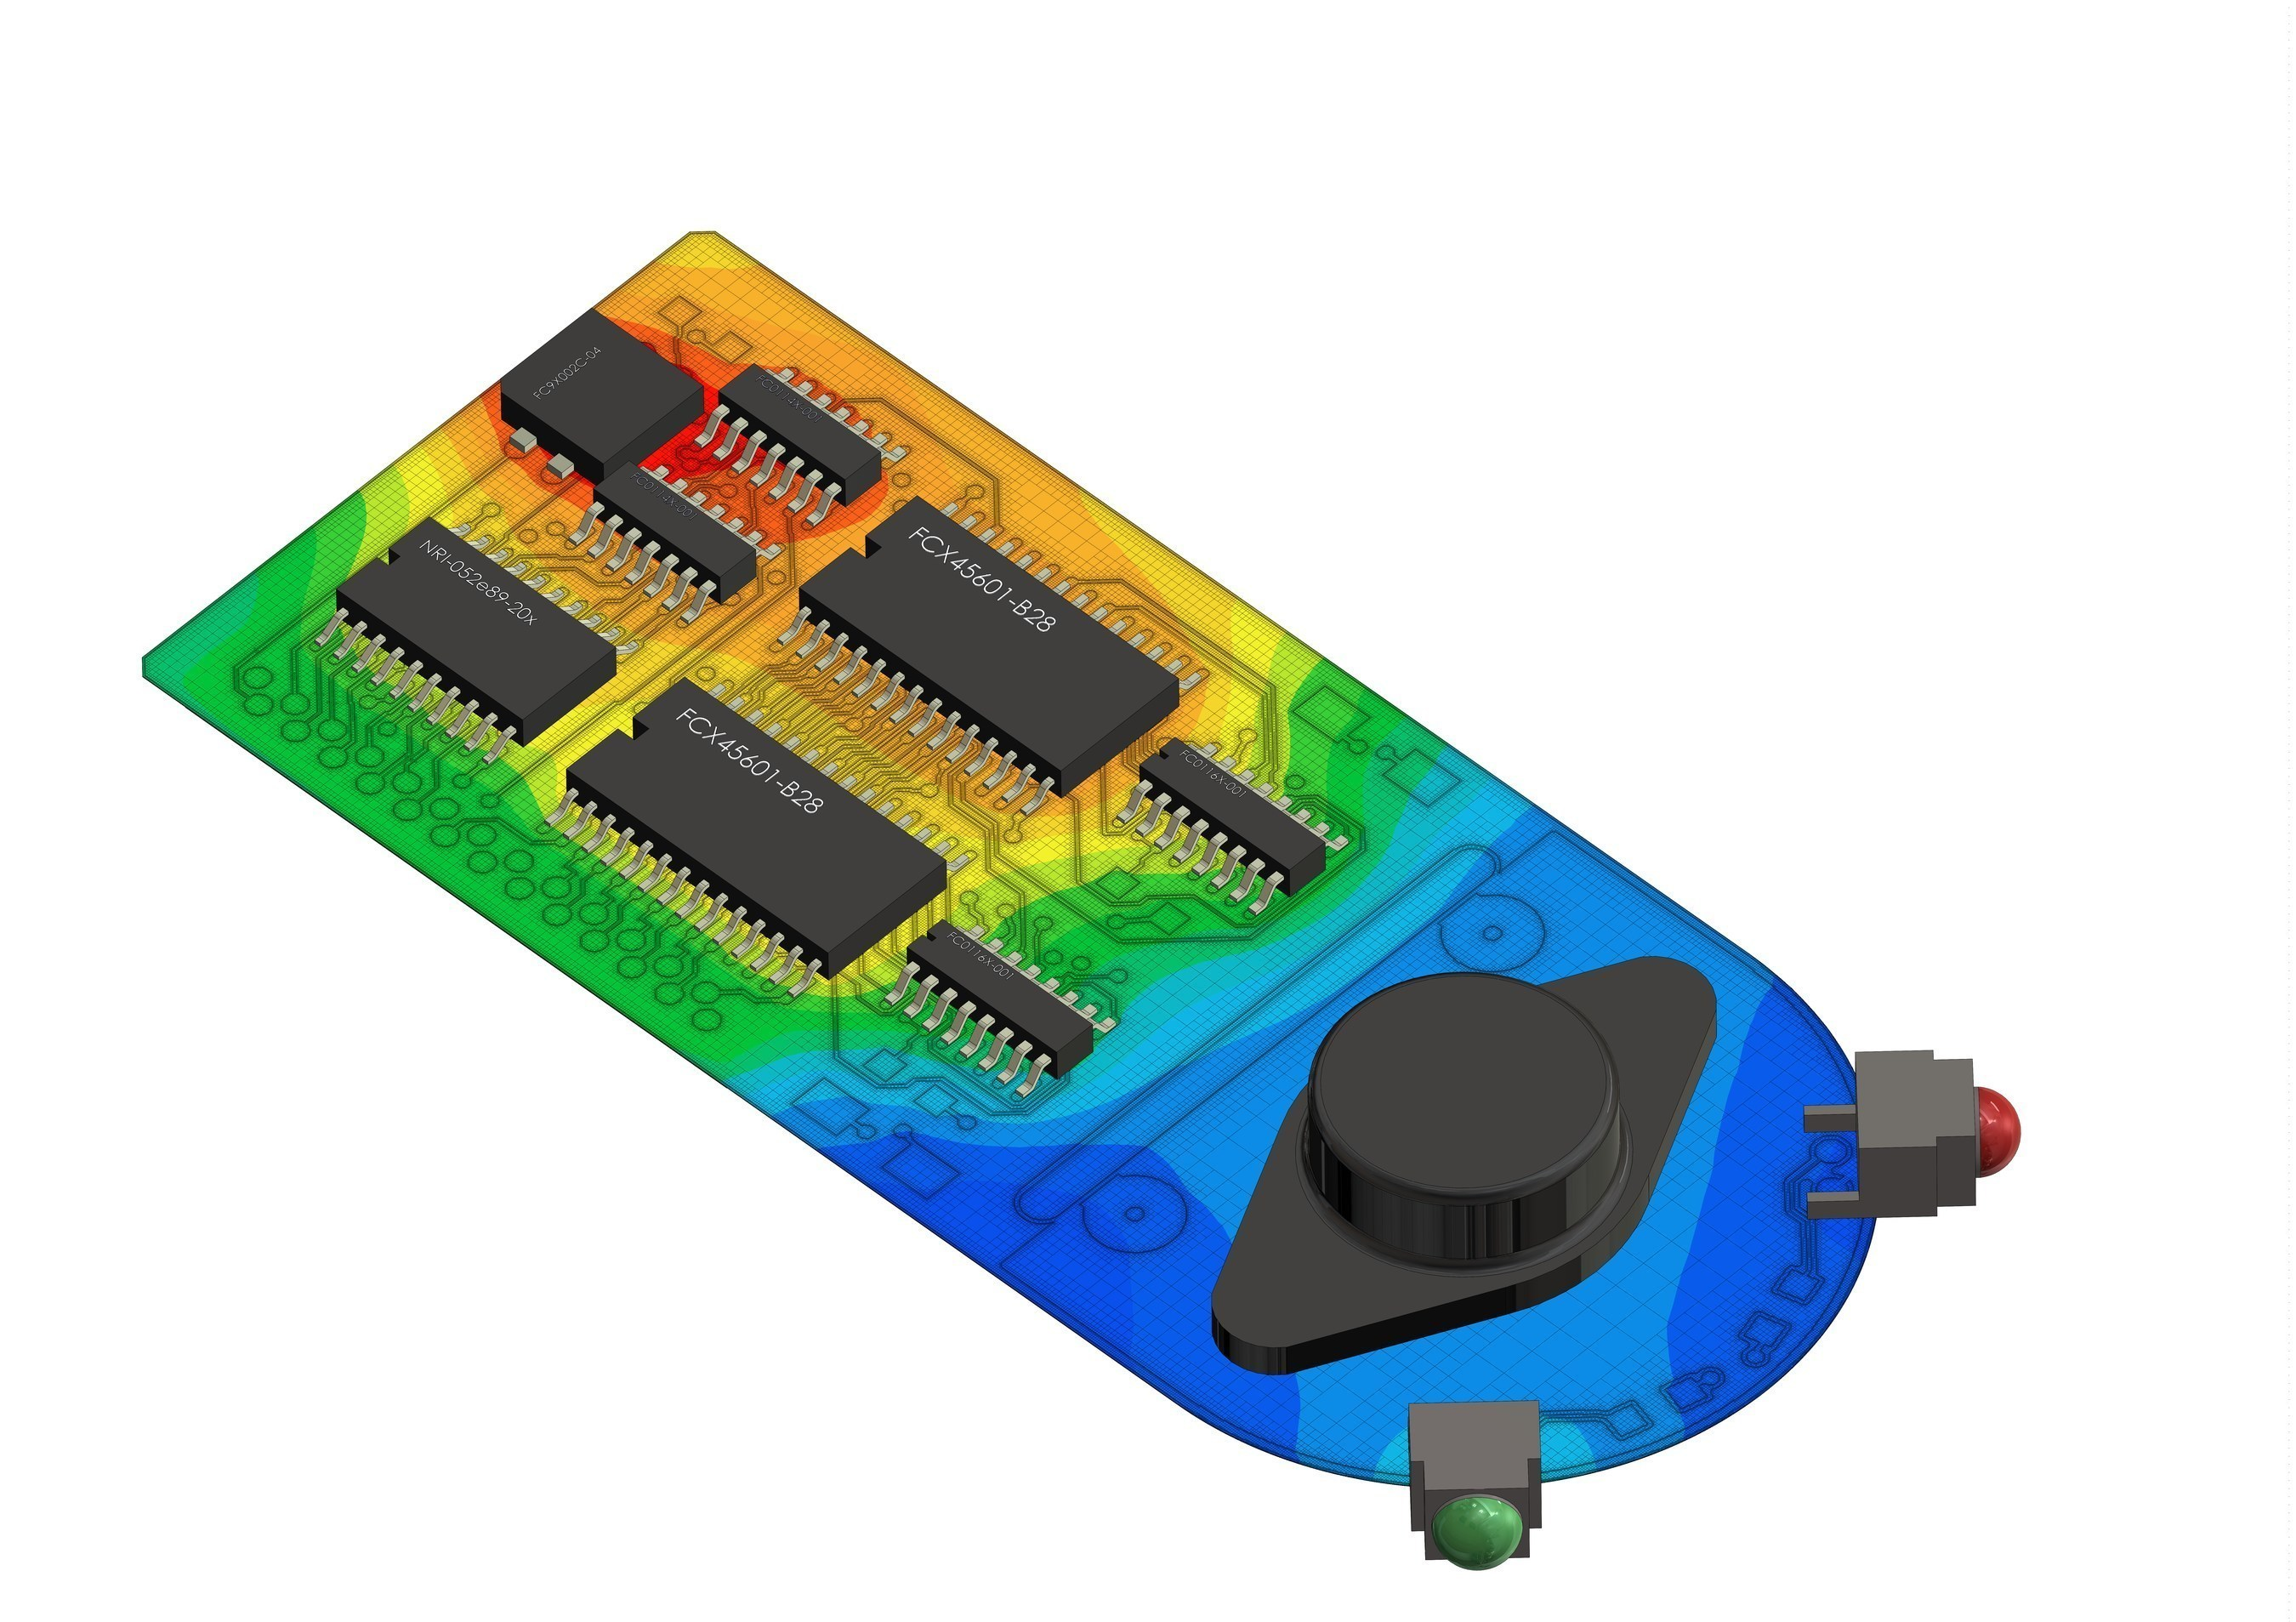 The new Mentor Graphics FloTHERM XT product with EDA connectivity has been used to calculate and display the surface temperature on an advanced printed circuit board.